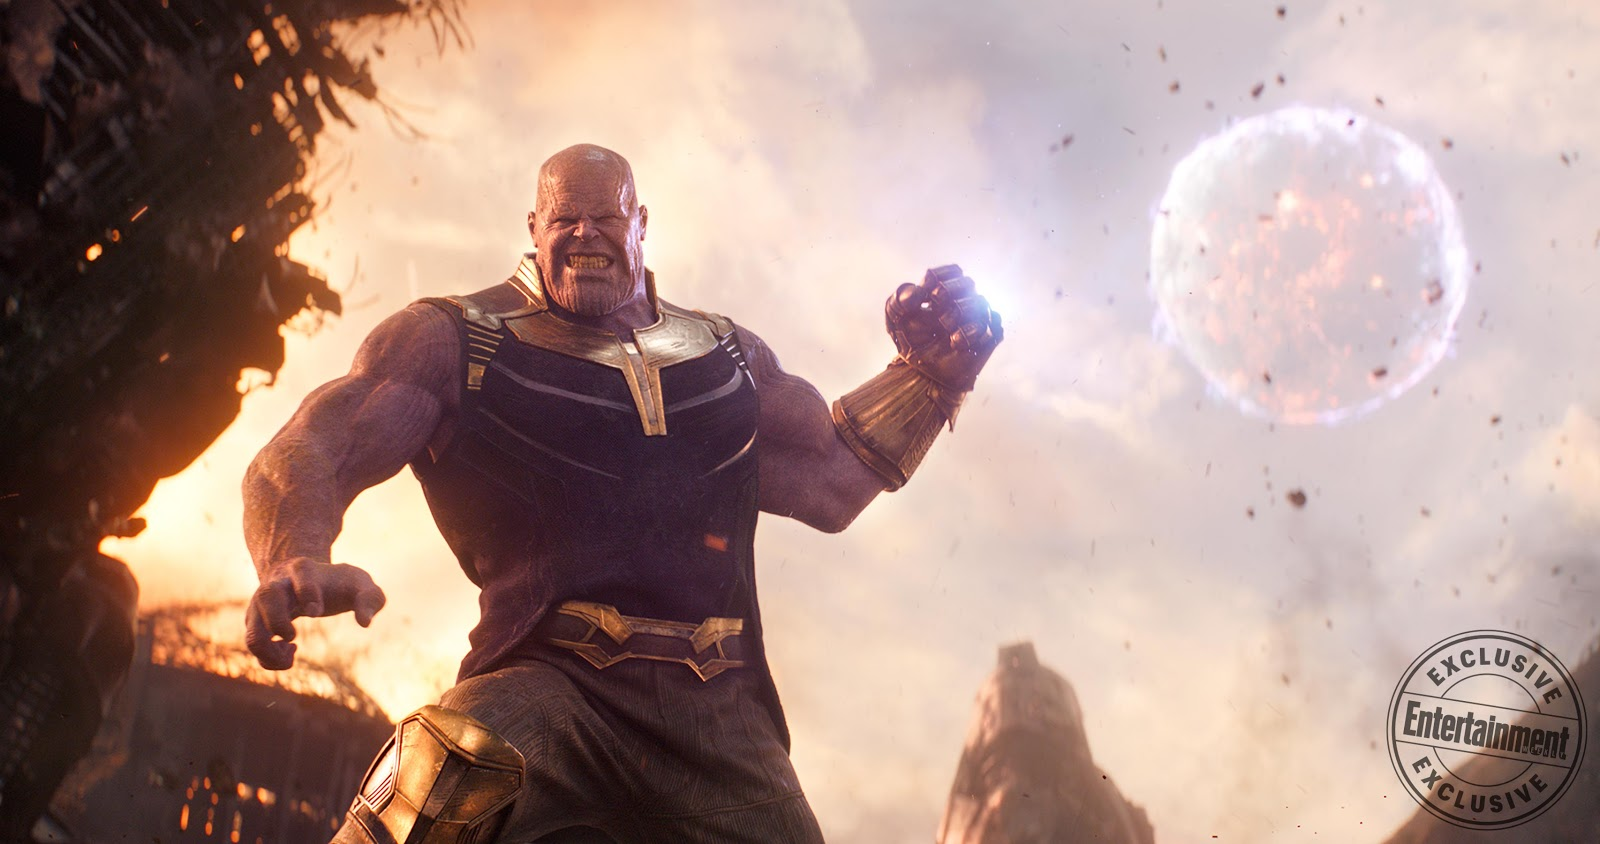 MOVIES: Avengers: Infinity War - News Roundup *Updated 23rd